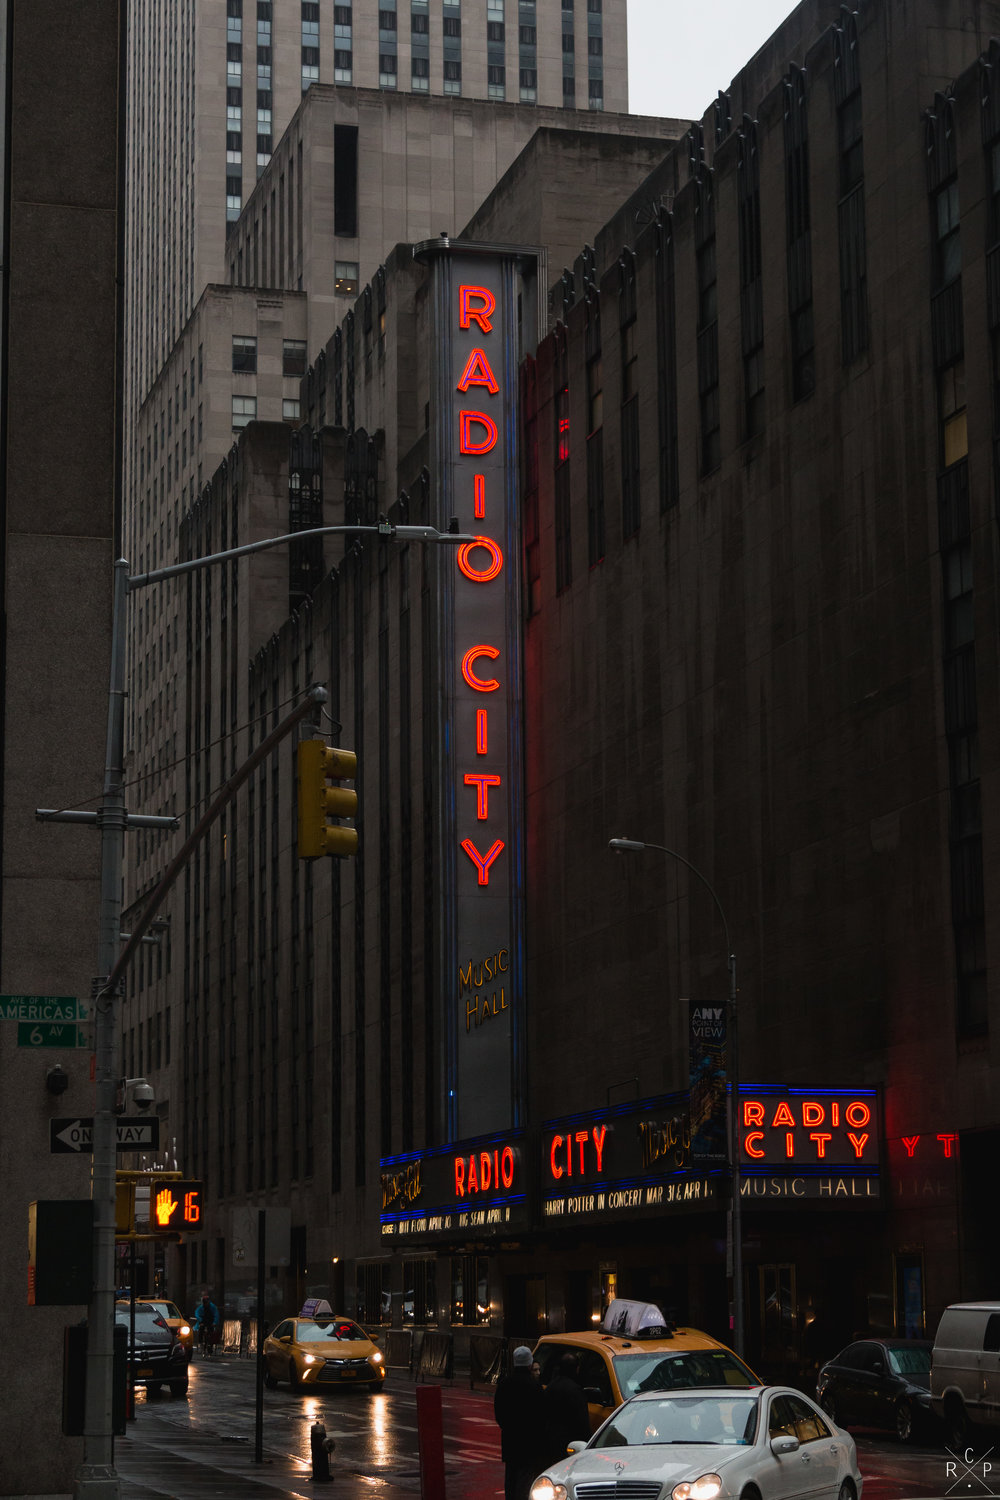 Radio City - New York, USA 12/02/2017